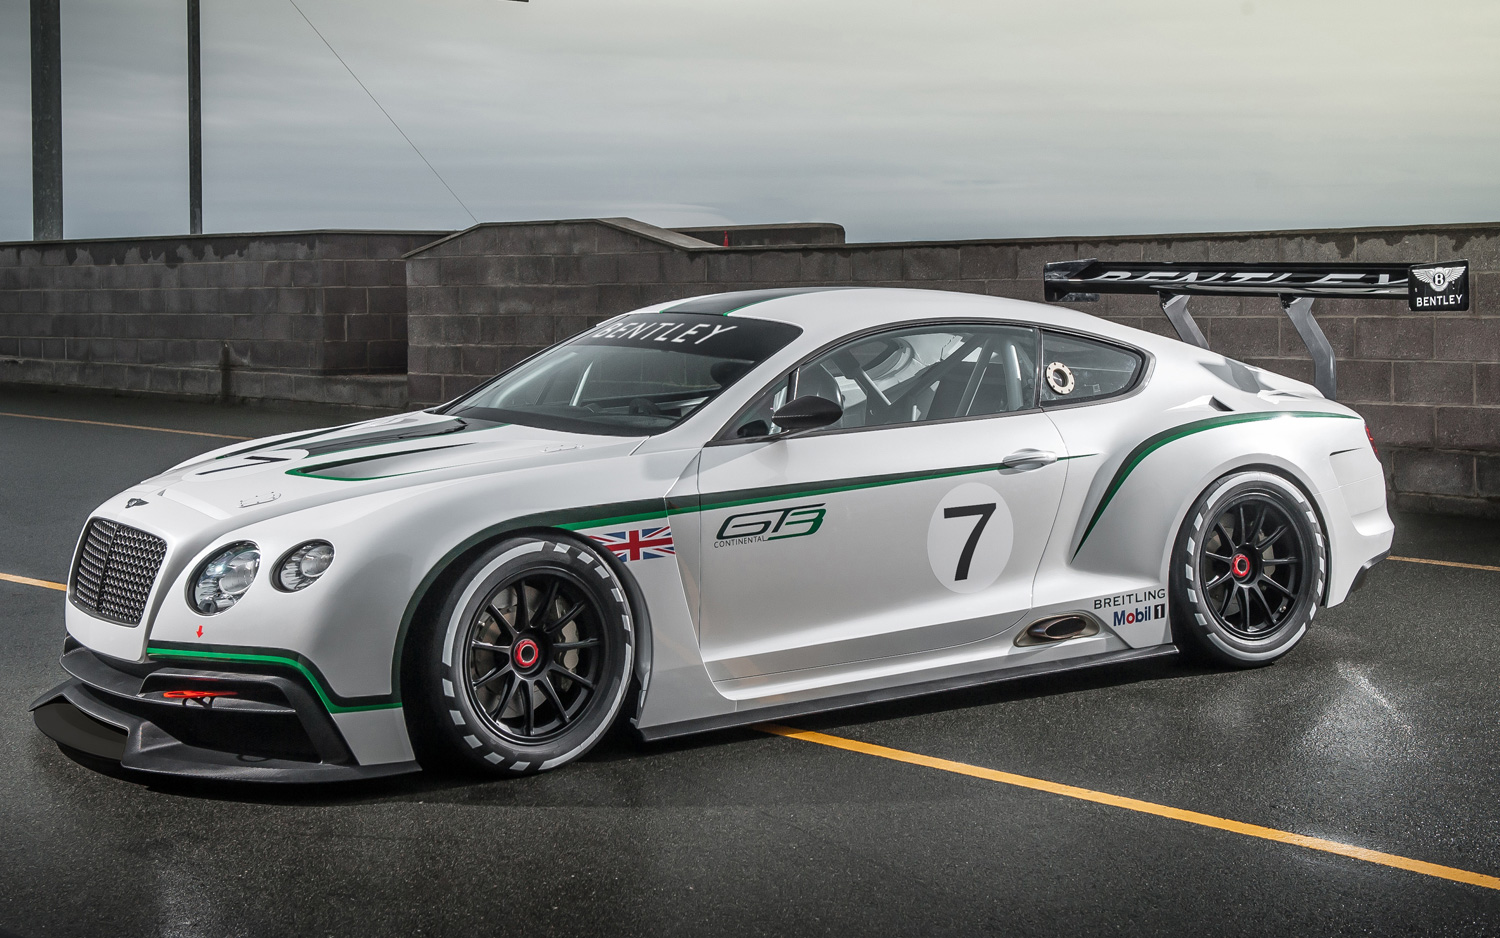 Bentley-Continental-GT-Race-Car-HD-Desktop-wallpaper-wp424042-1